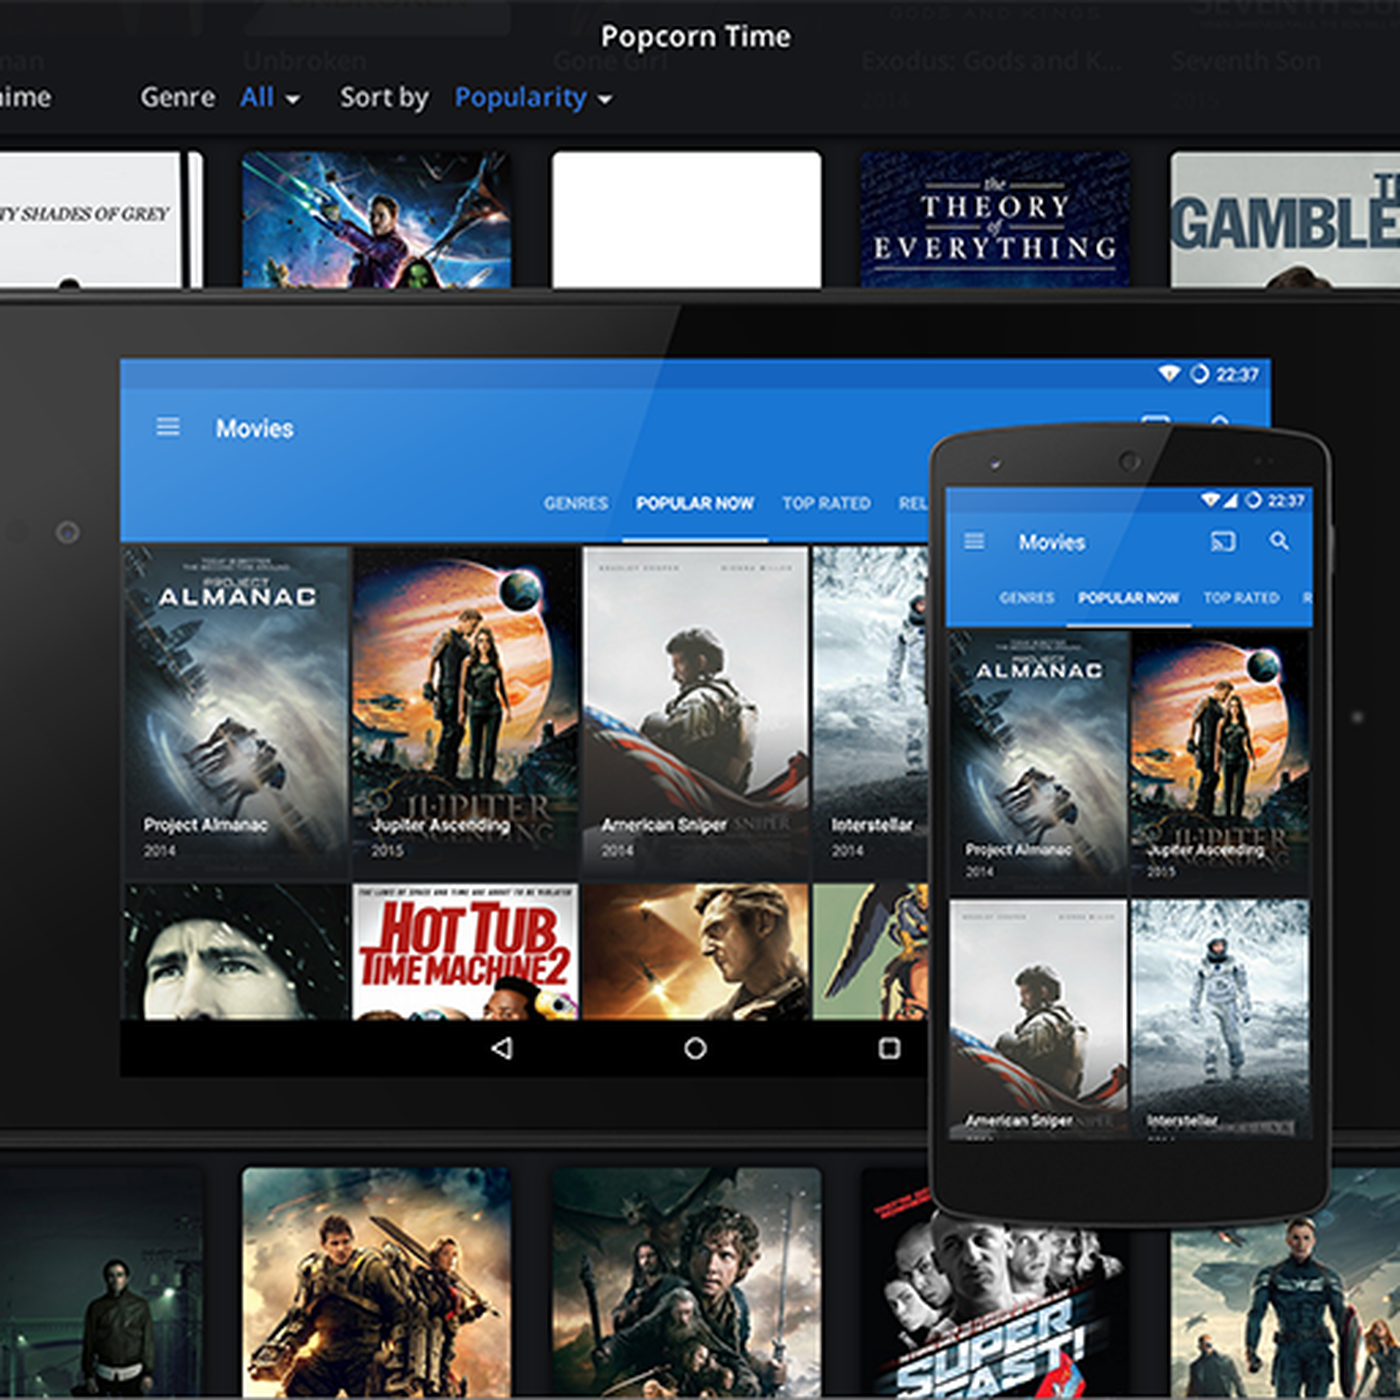 Popcorn Time's best-known app comes back to life - The Verge